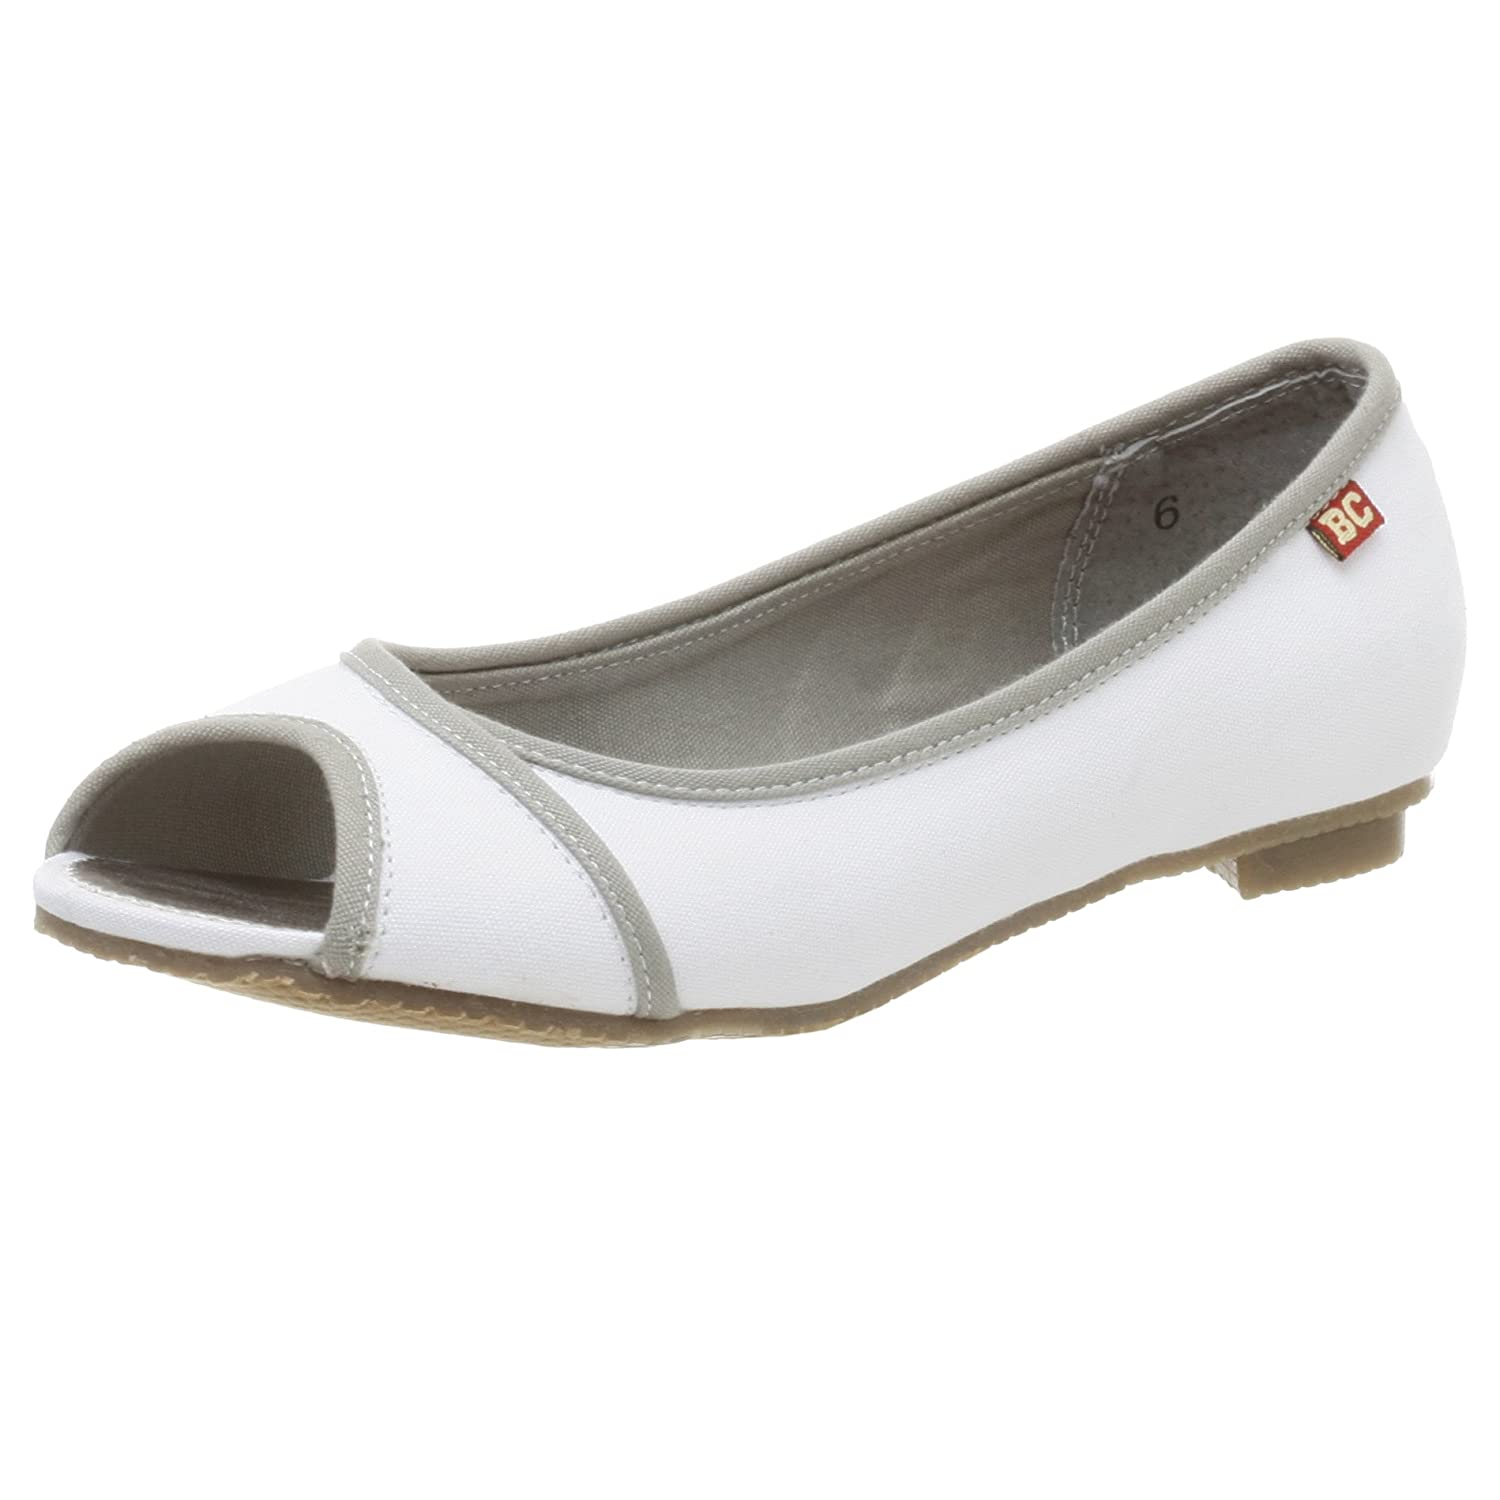 BC Footwear Women's Skinny Dippin Open Toe Flat - Free Overnight Shipping & Return Shipping: Endless.com from endless.com